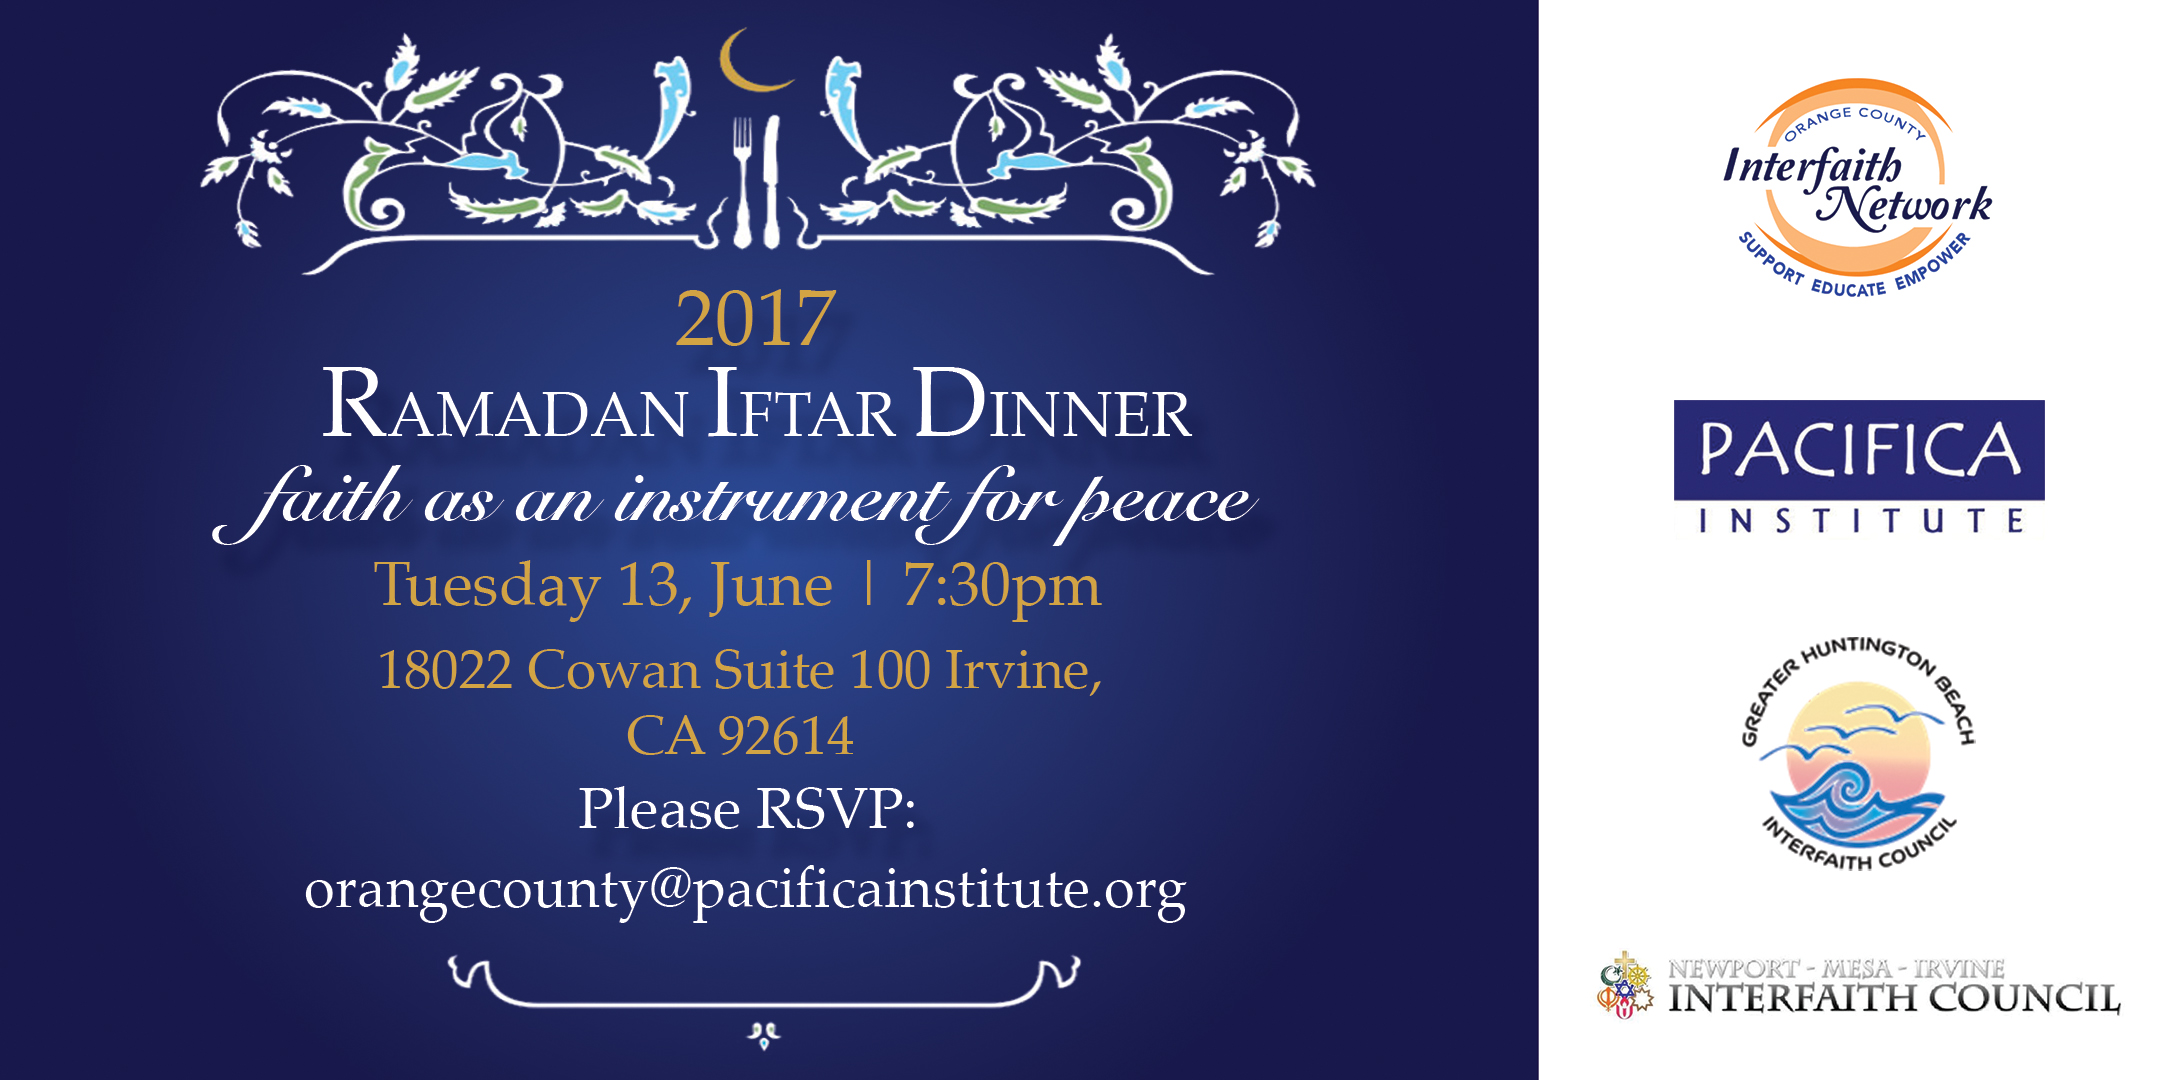 Annual Orange County Interfaith Ramadan Iftar Dinner